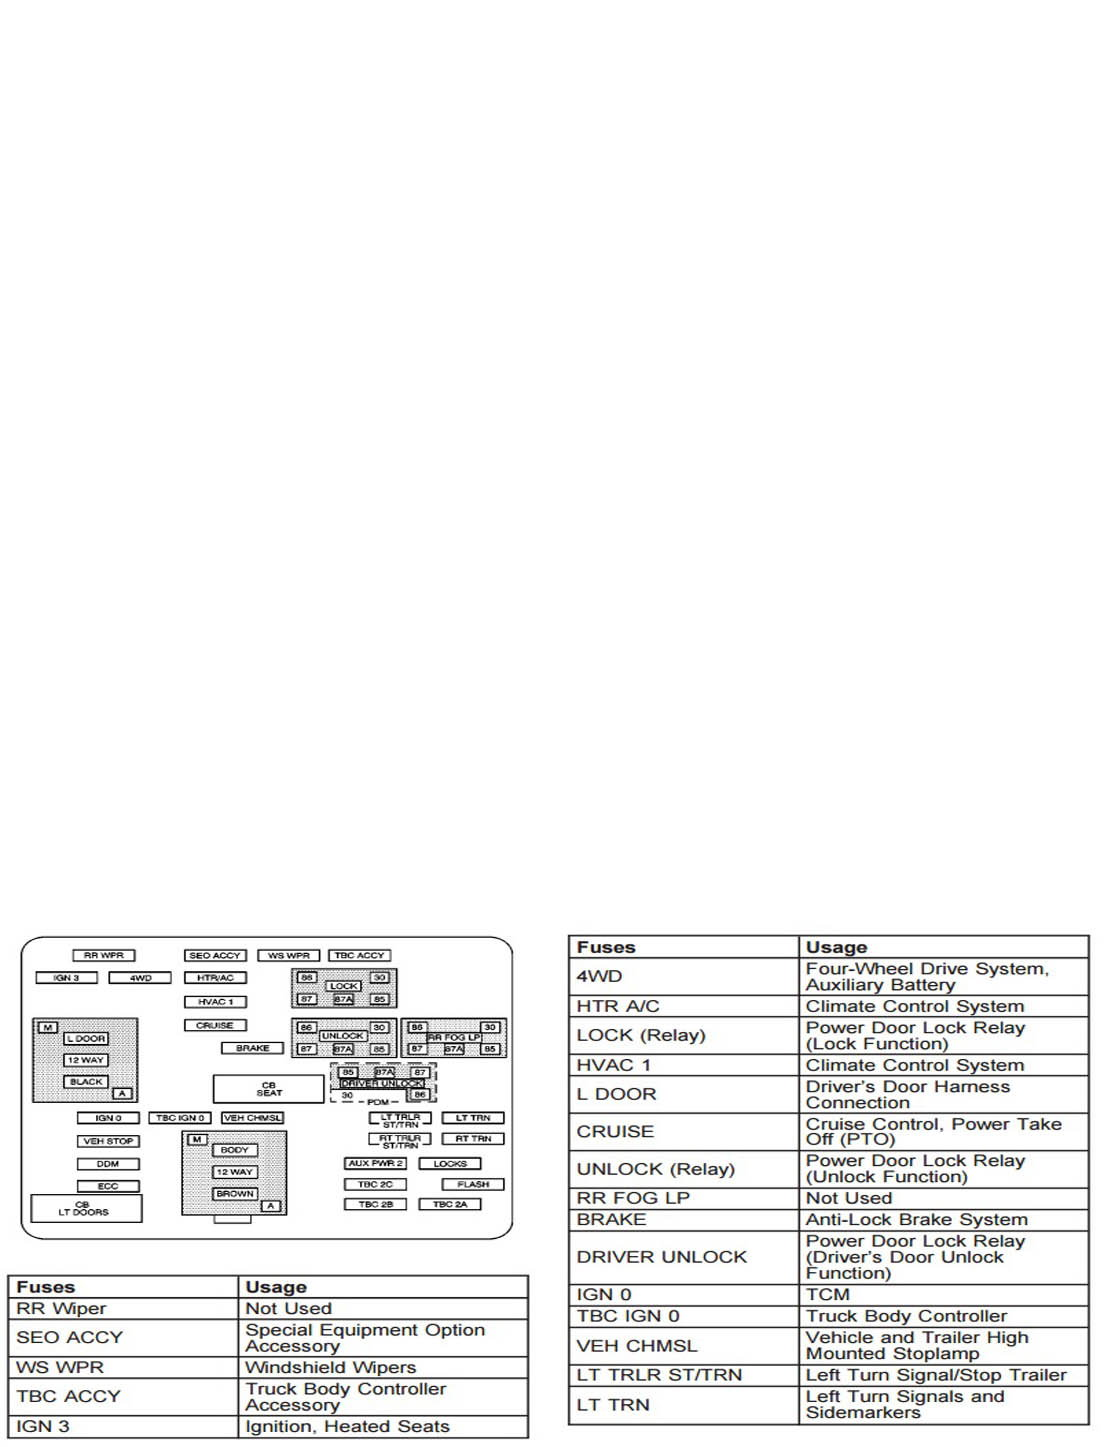 MMMay 27 Fuse Box 12 69859 chevrolet silverado gmt800 1999 2006 fuse box diagram chevroletforum 2004 chevy silverado fuse box diagram at crackthecode.co